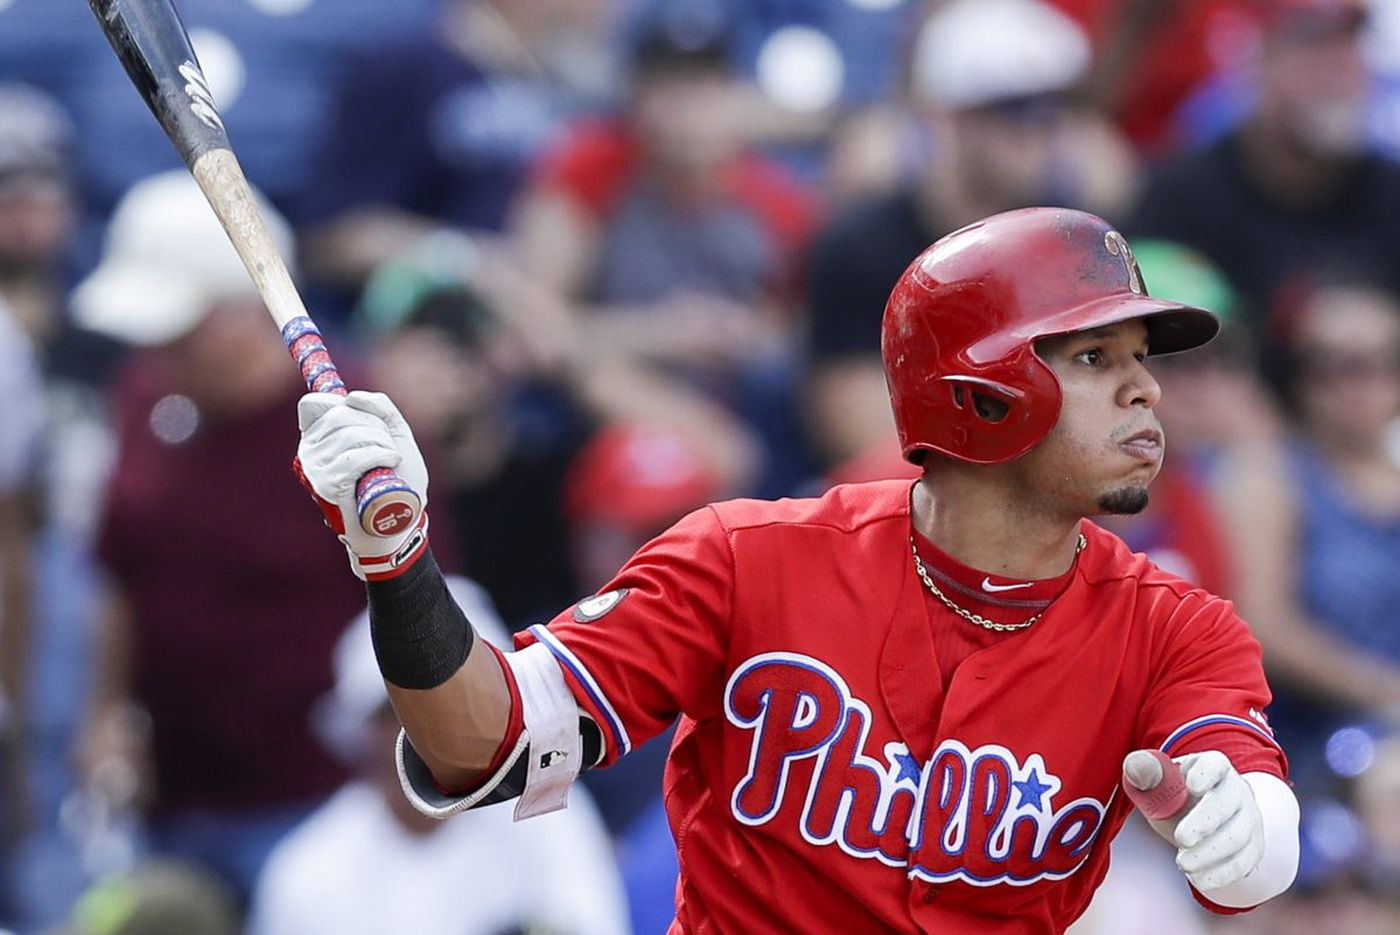 Cesar Hernandez's arrival as elite second baseman for Phillies might not prevent his departure